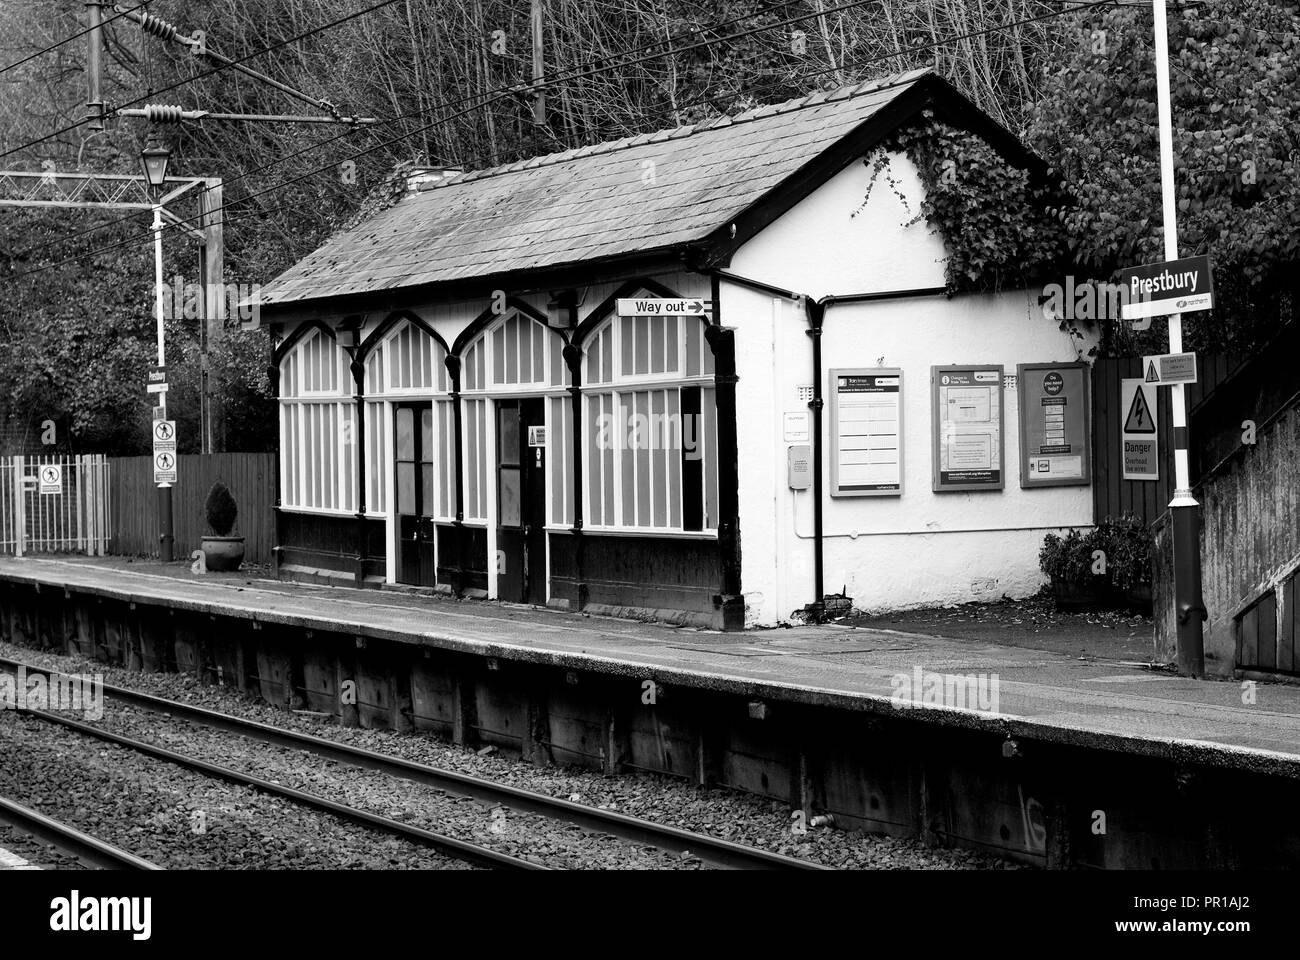 Prestbury Railway Station. The old up line waiting room(s). - Stock Image